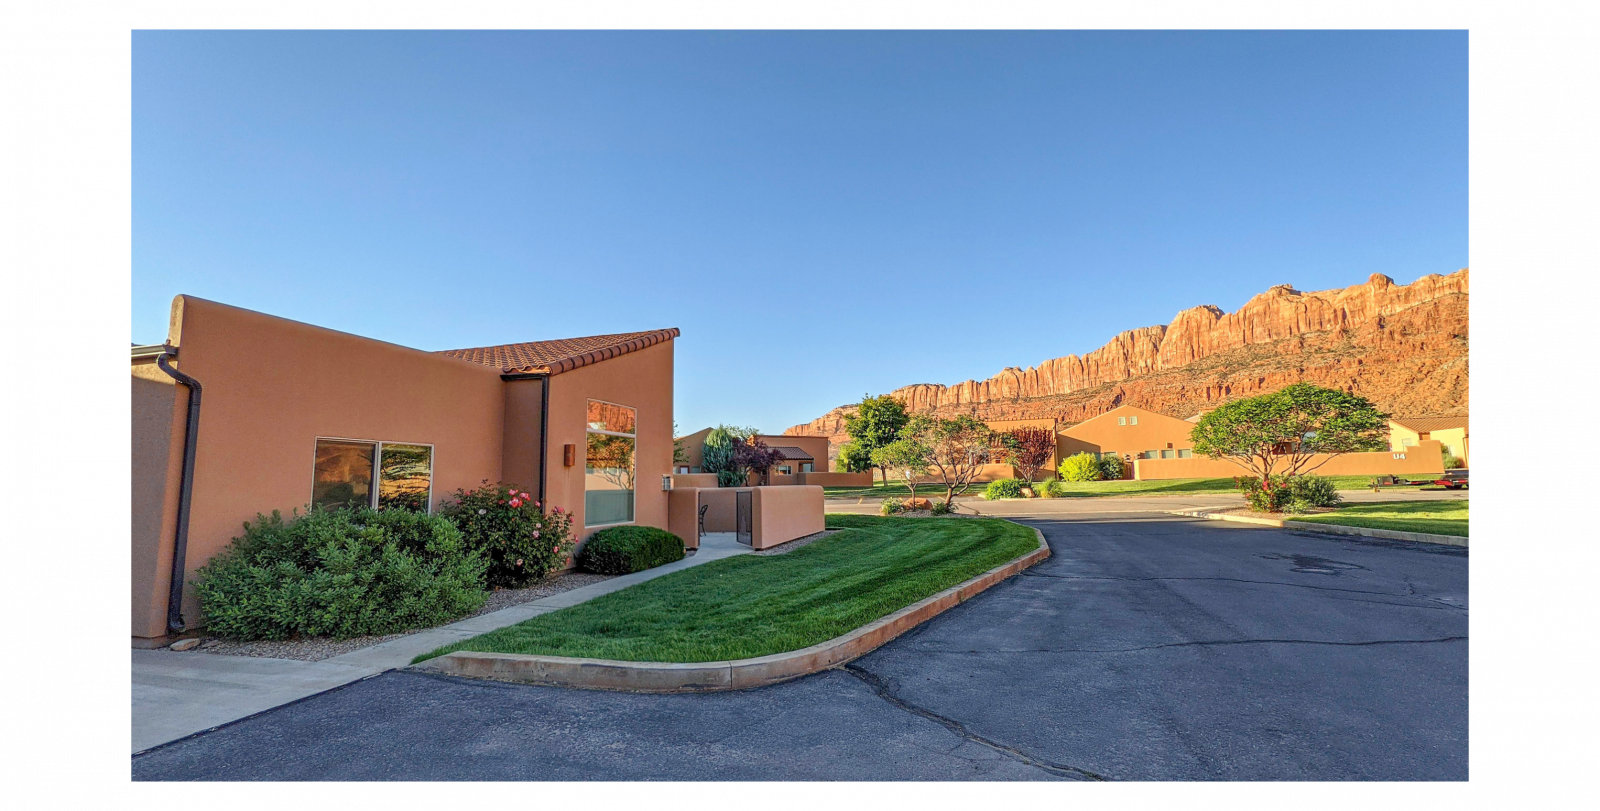 Moab family vacation rental condo exterior with red rocks